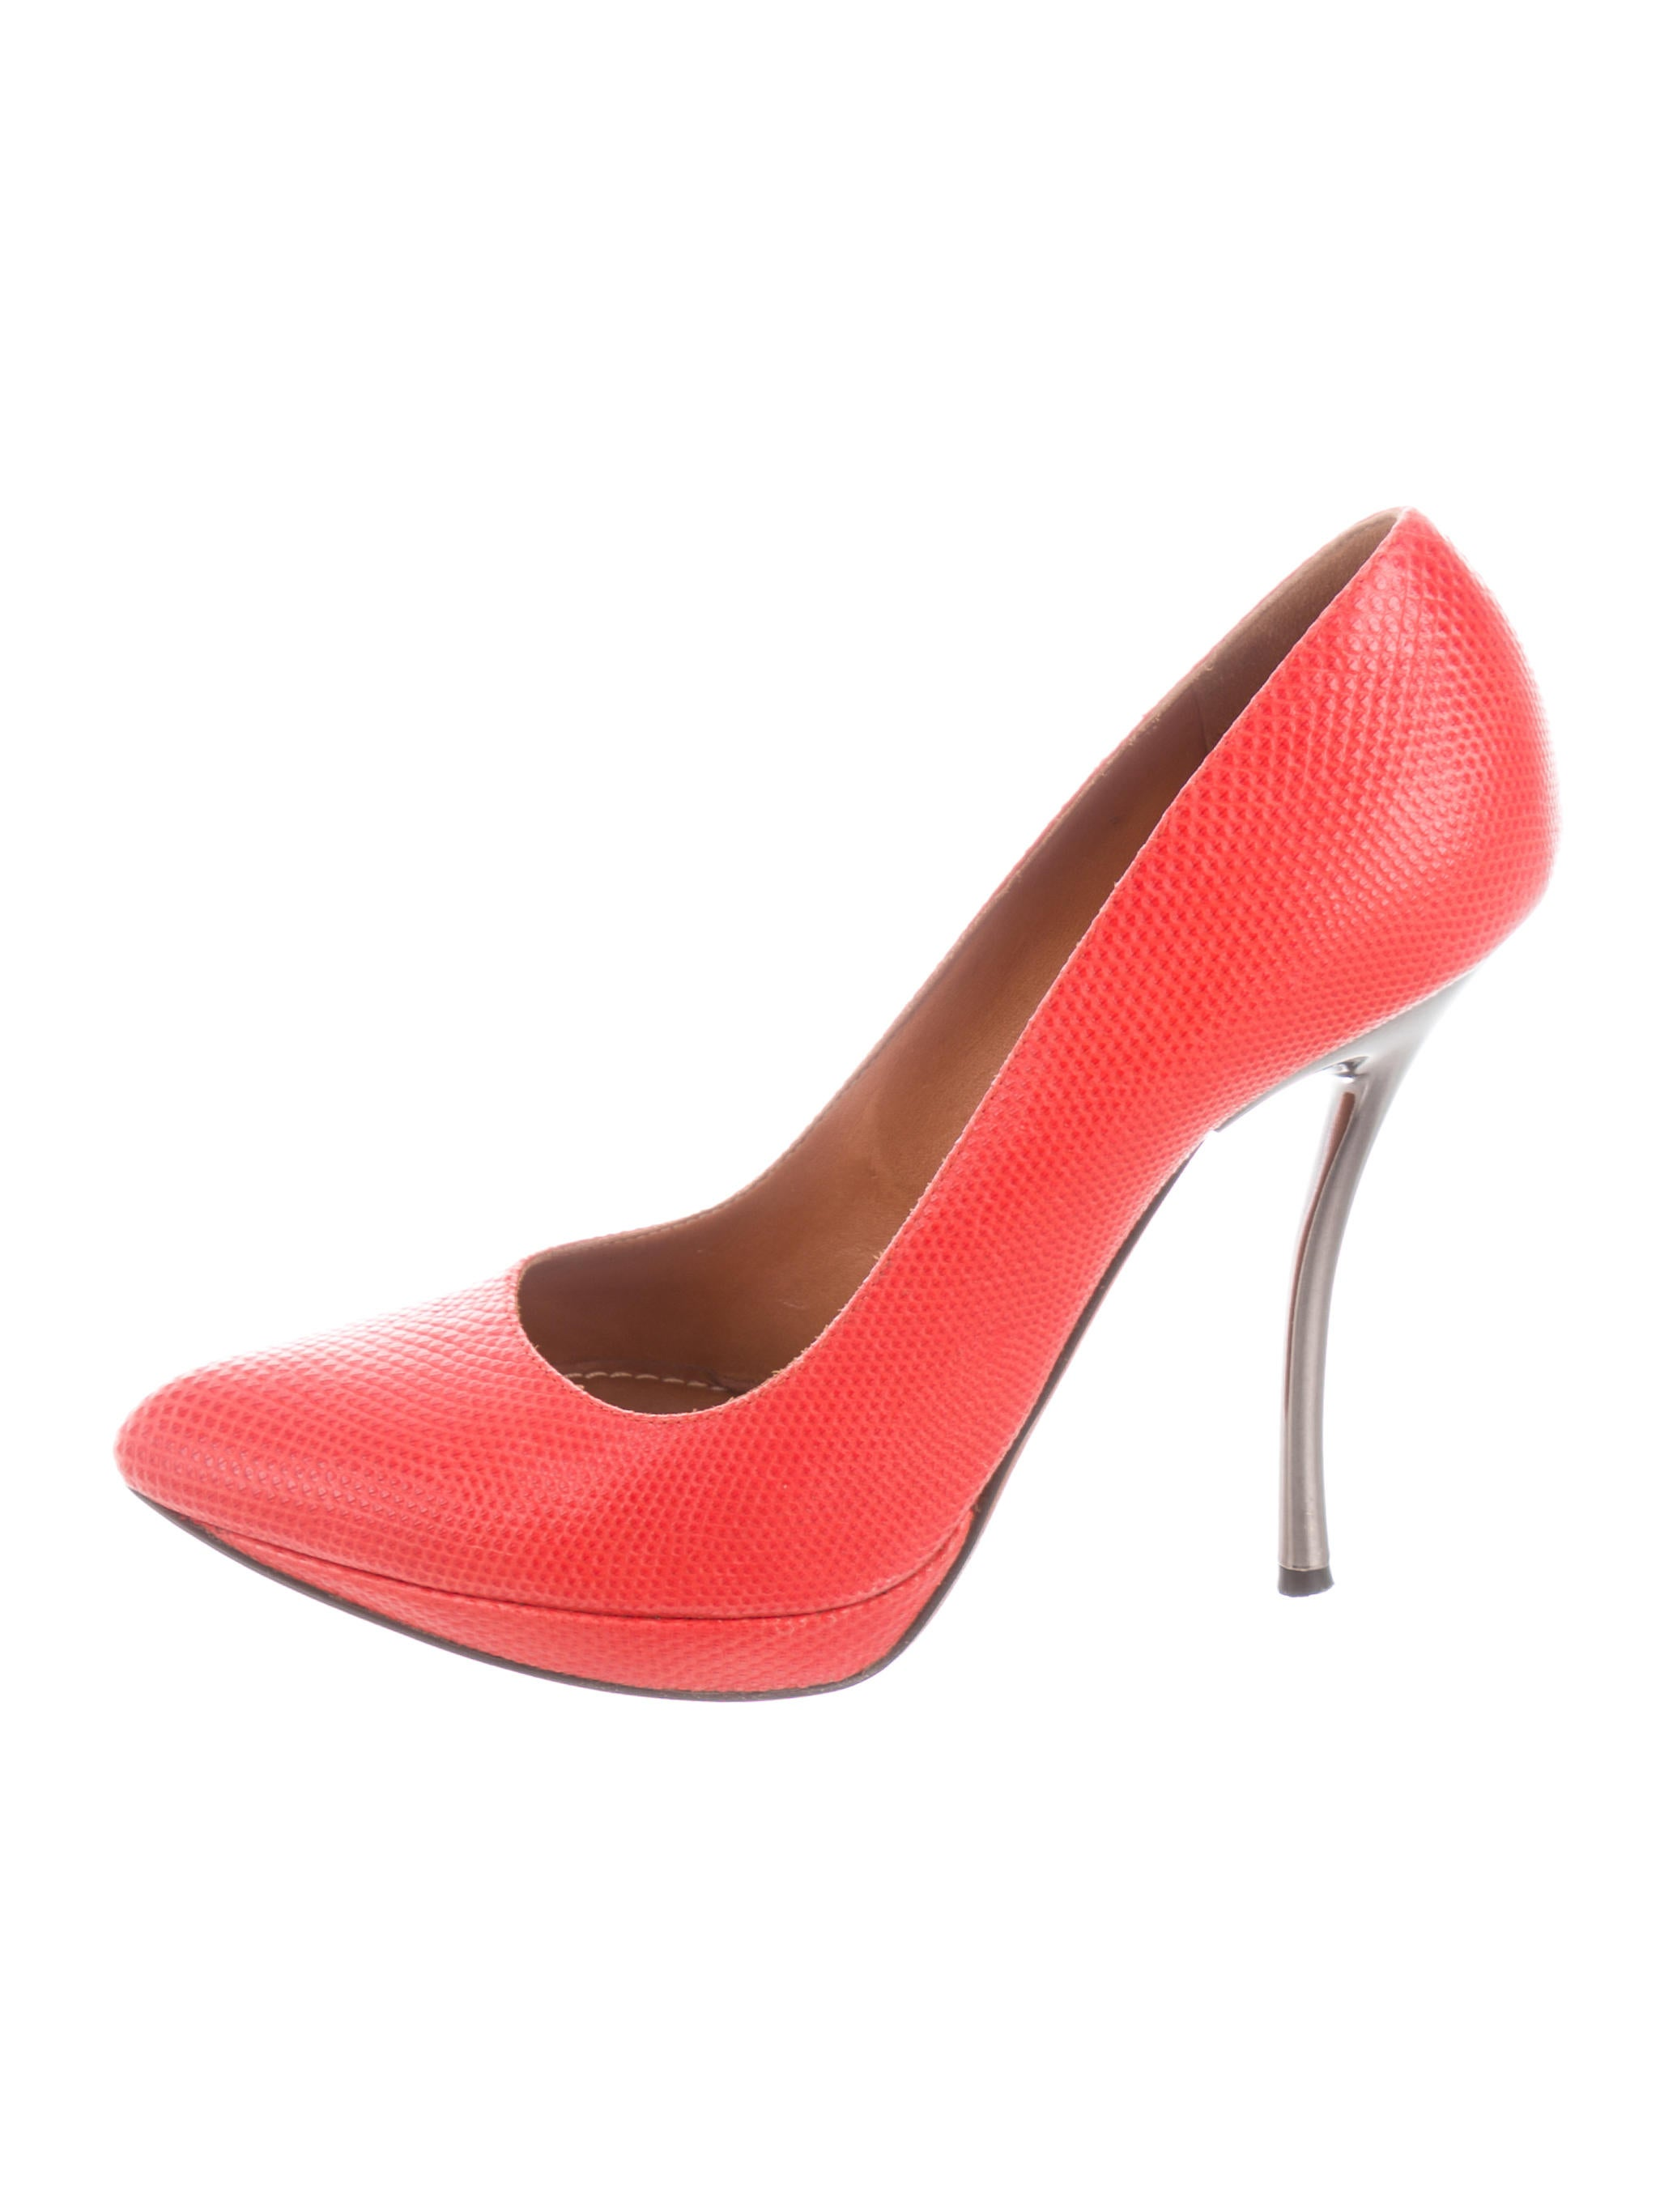 Lanvin Karung Pointed-Toe Pumps really online cheap sale pictures prices cheap price cheap sale hot sale discount shop for jjswDr